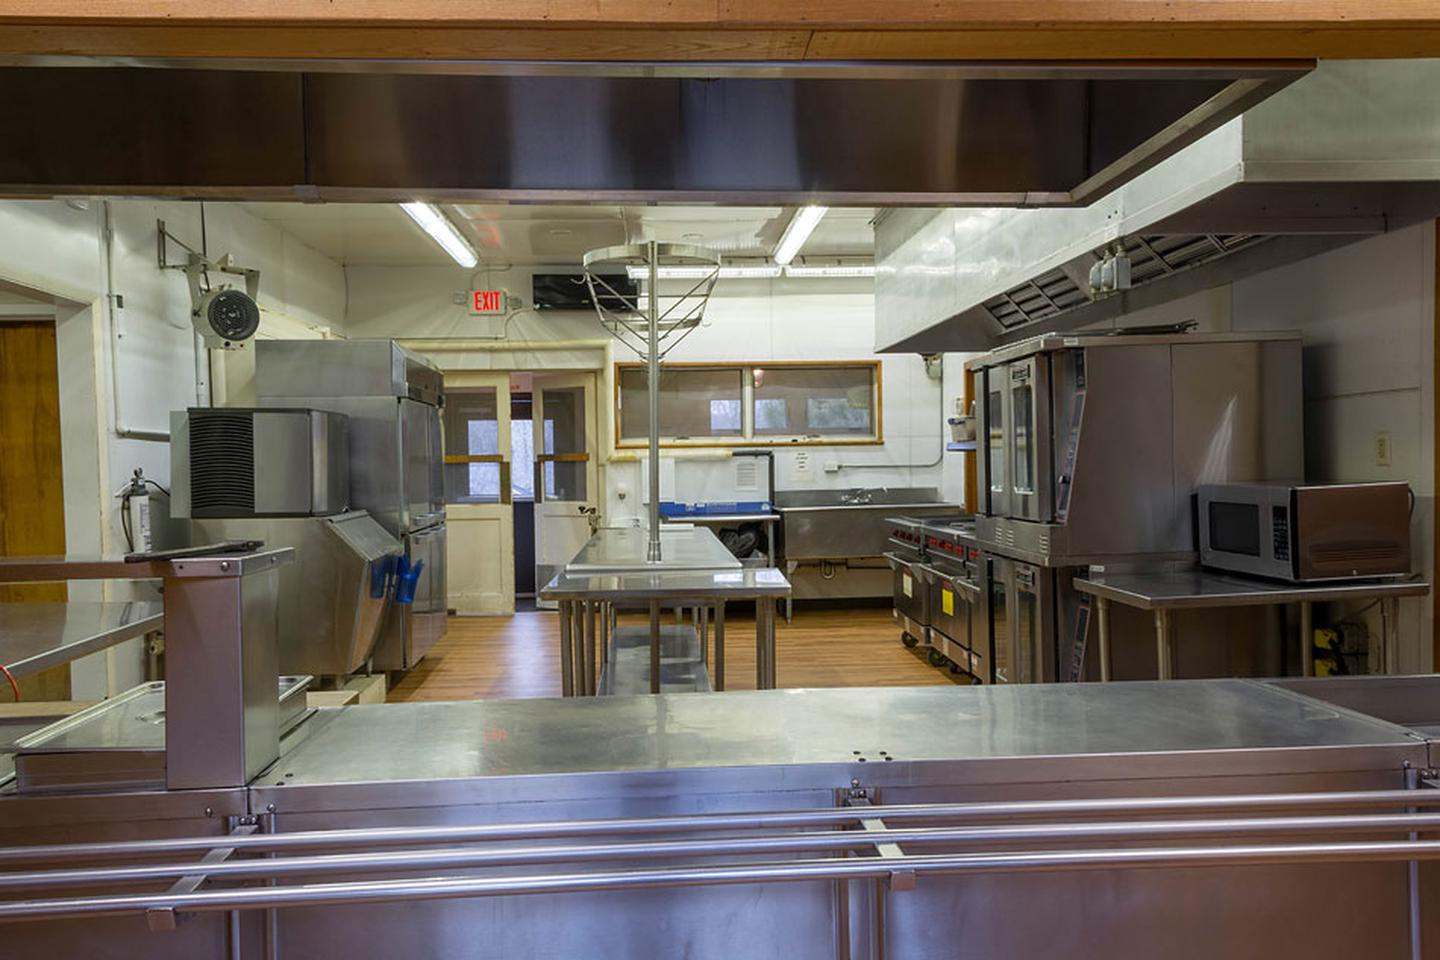 Dining hall front door view of the kitchen. Stainless serving line with 3-well hot food table, prep tables, ice machine, prep refrigerator, 3 ranges, convection oven, microwave and double sink.Dining hall front door view of the kitchen. Stainless serving line with 3-well hot food table, prep tables, ice machine, prep refrigerator, 3 ranges, convection oven, microwave and double sink.  Not visible are 2 large storage areas, 1 small bathroom, walk-in refrigerator, and double freezer.